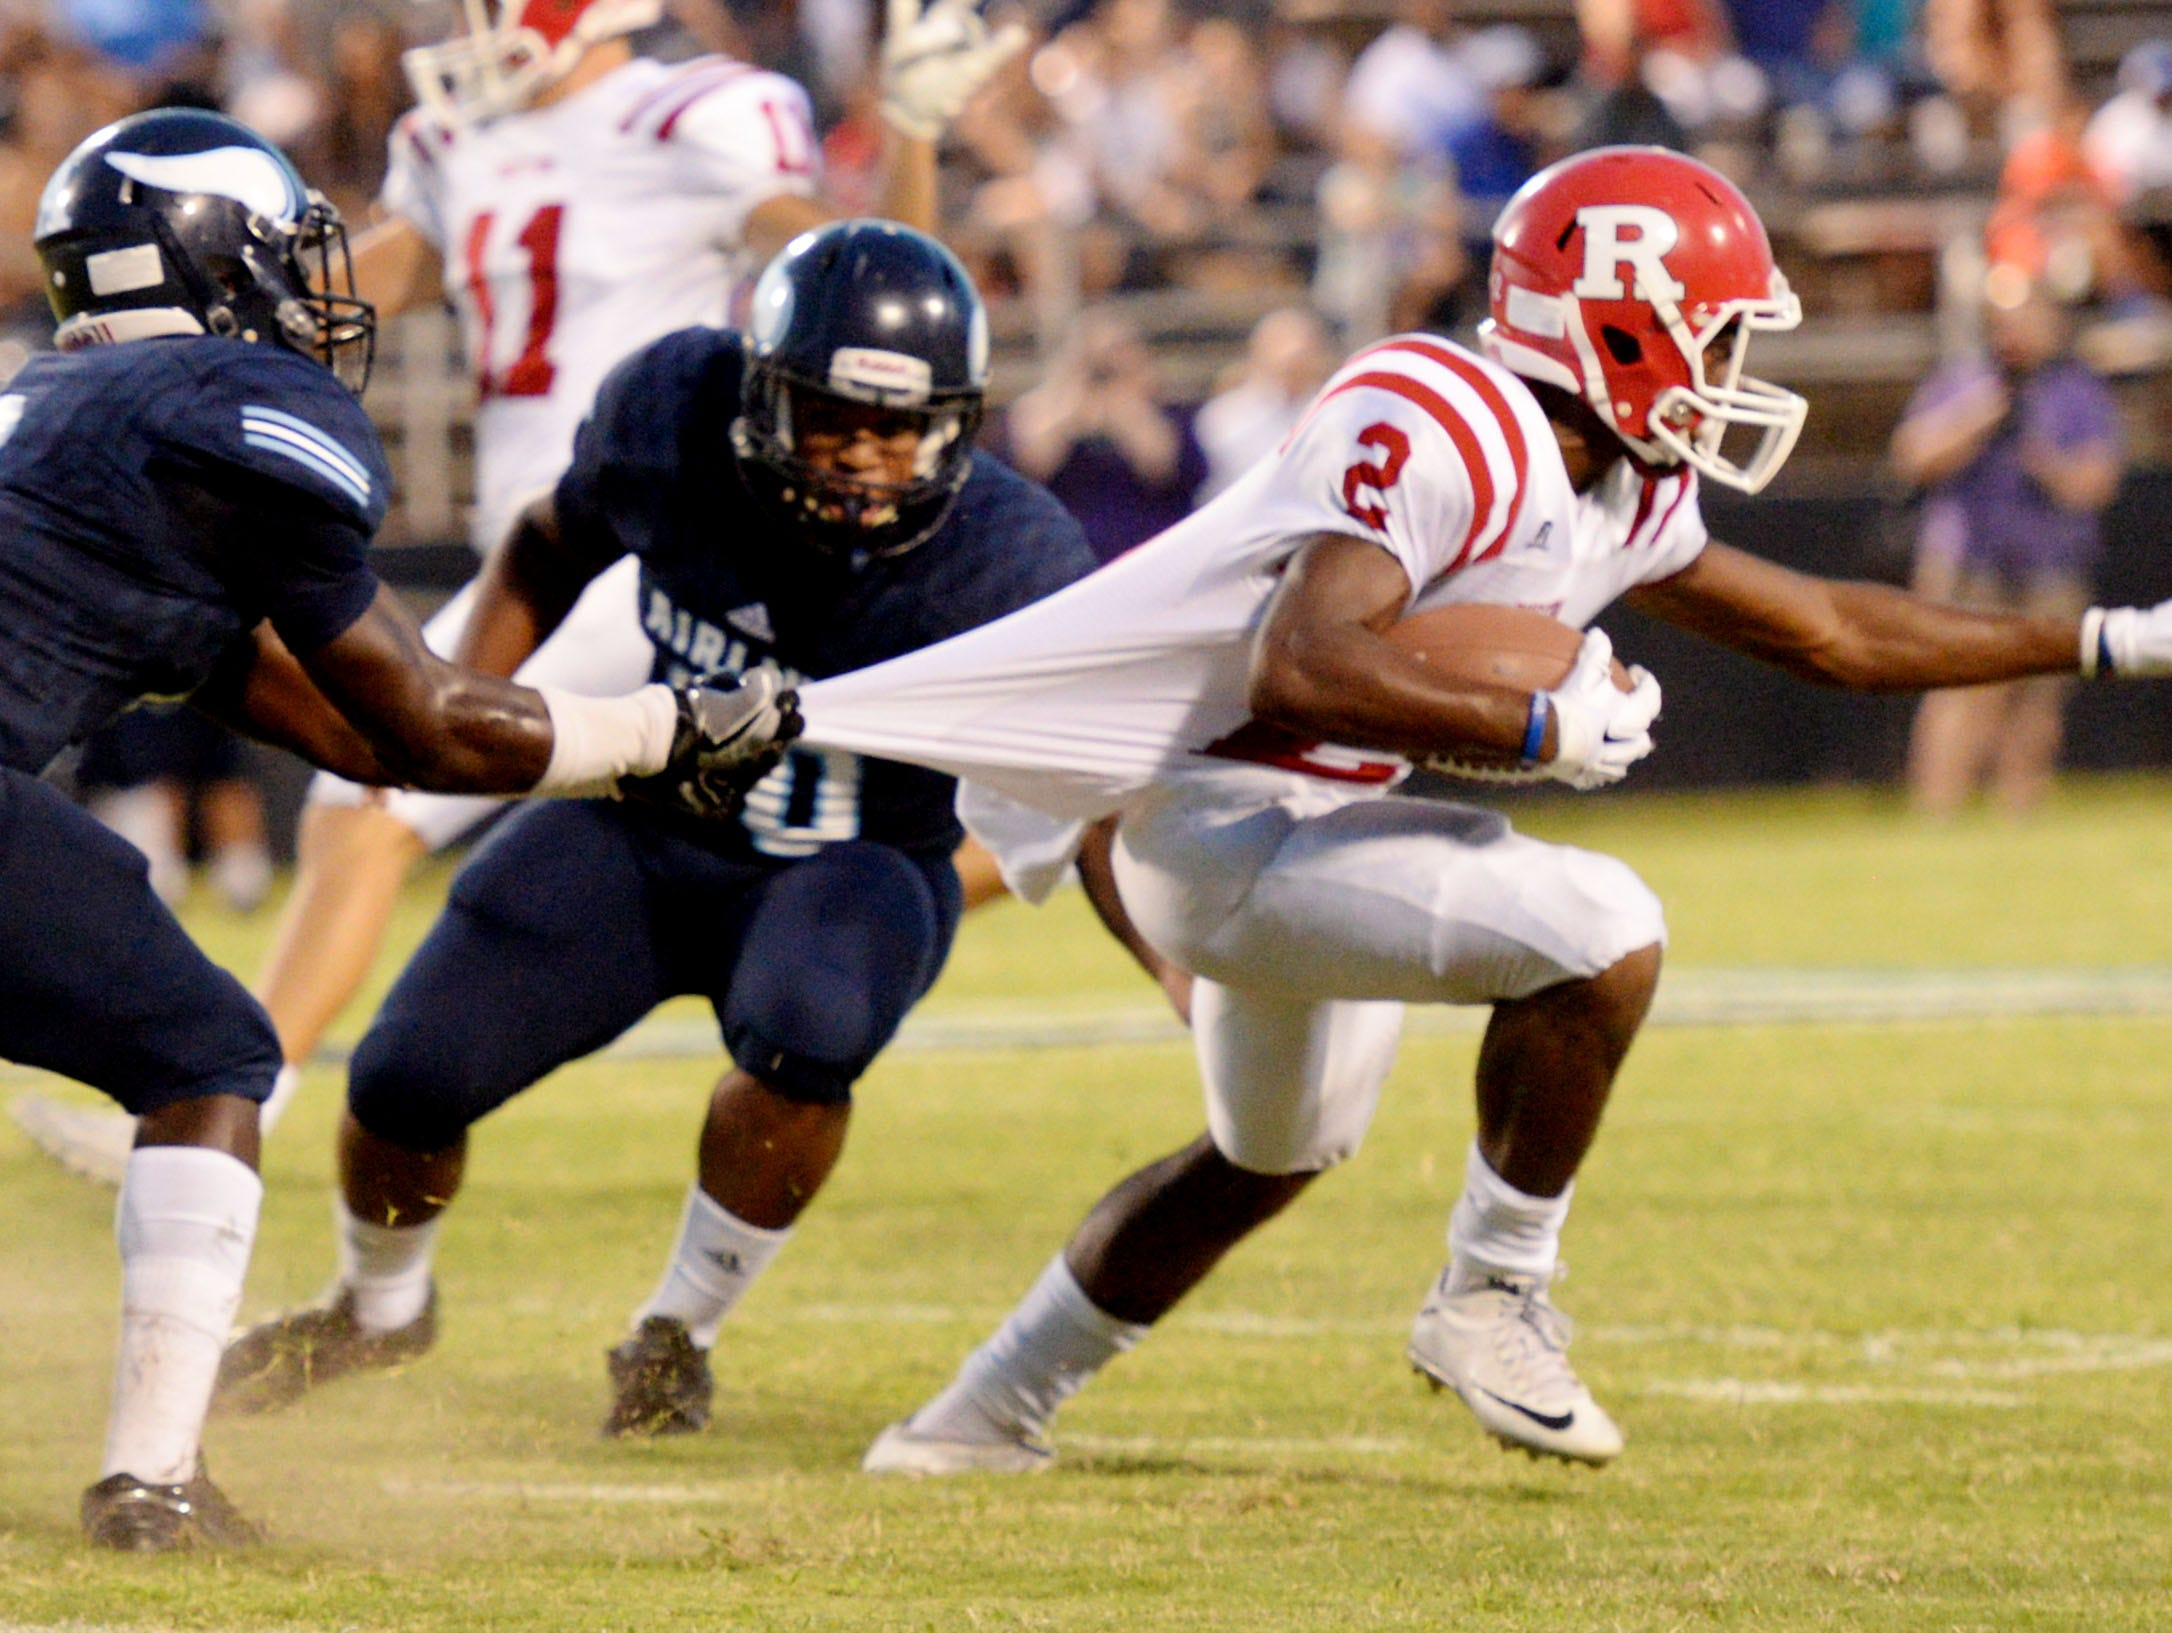 Ruston's Carlos Hunt tries to get past Airline's defense during their game Friday evening at Airline High School.